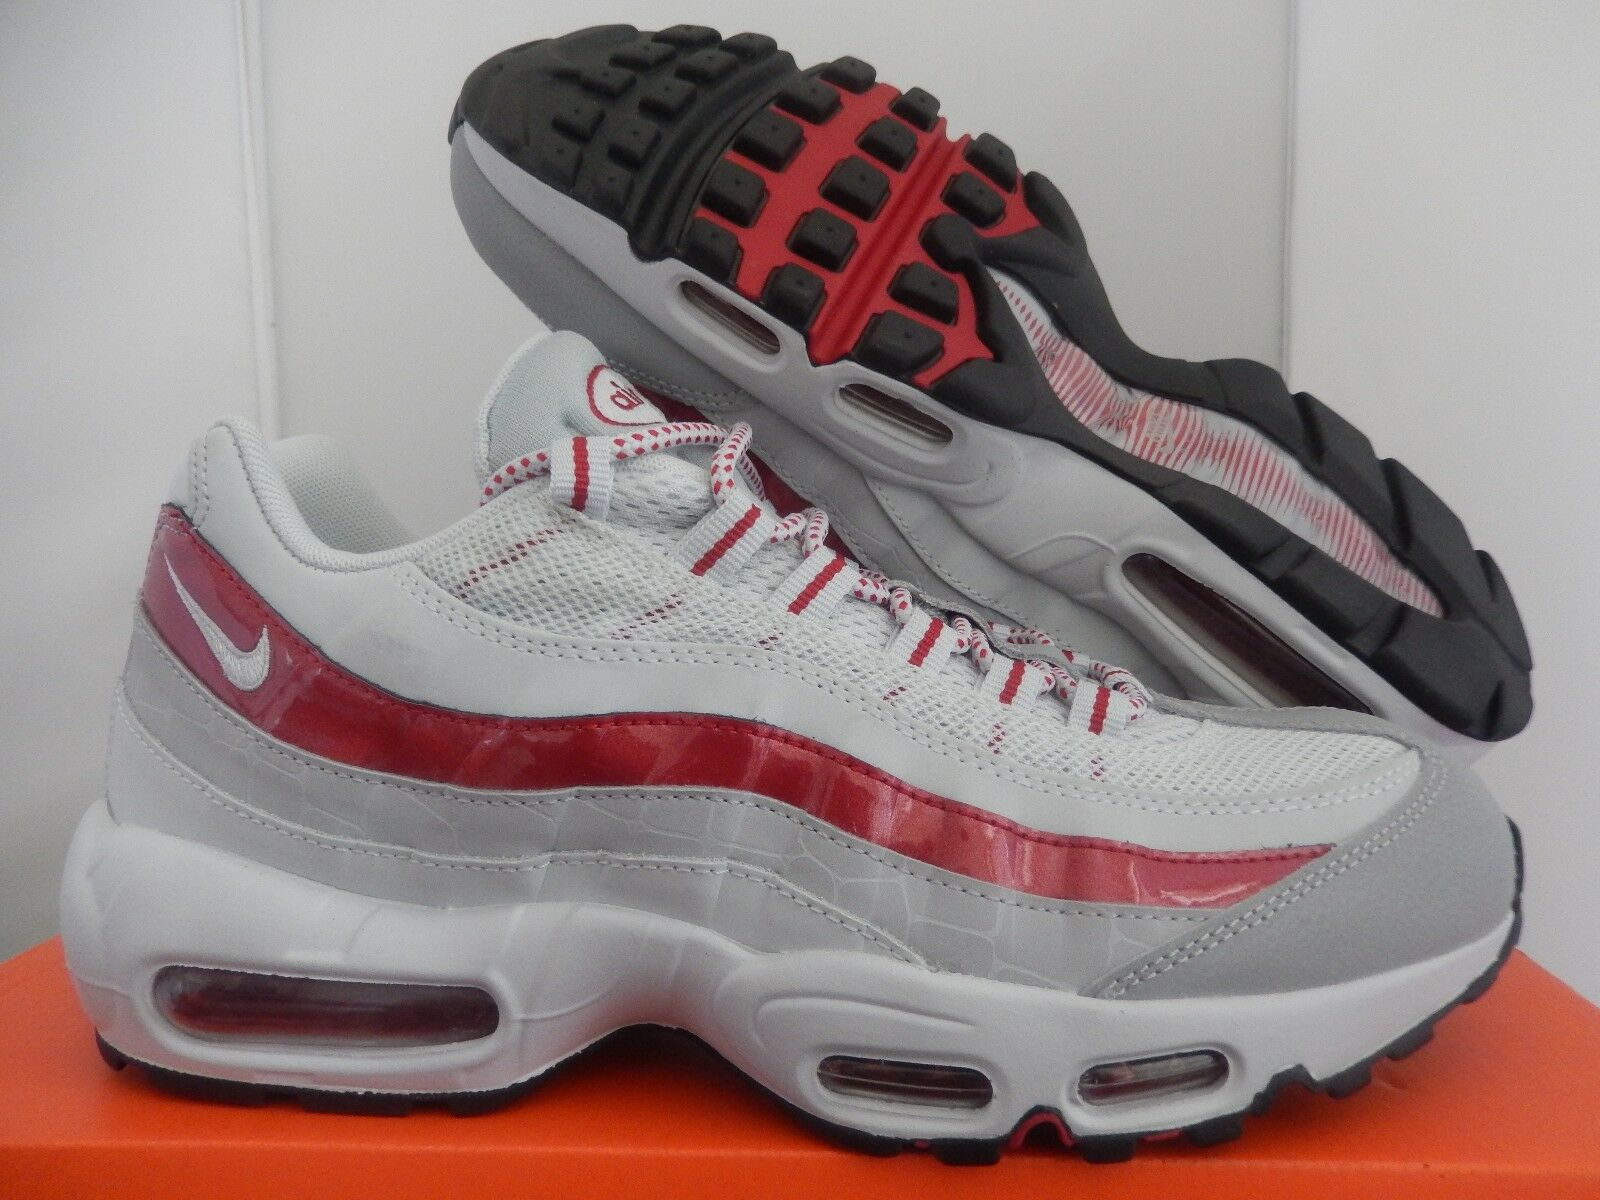 NIKE AIR MAX 95 PREMIUM WHITE-RED-GREY SZ 9 [538416-060]